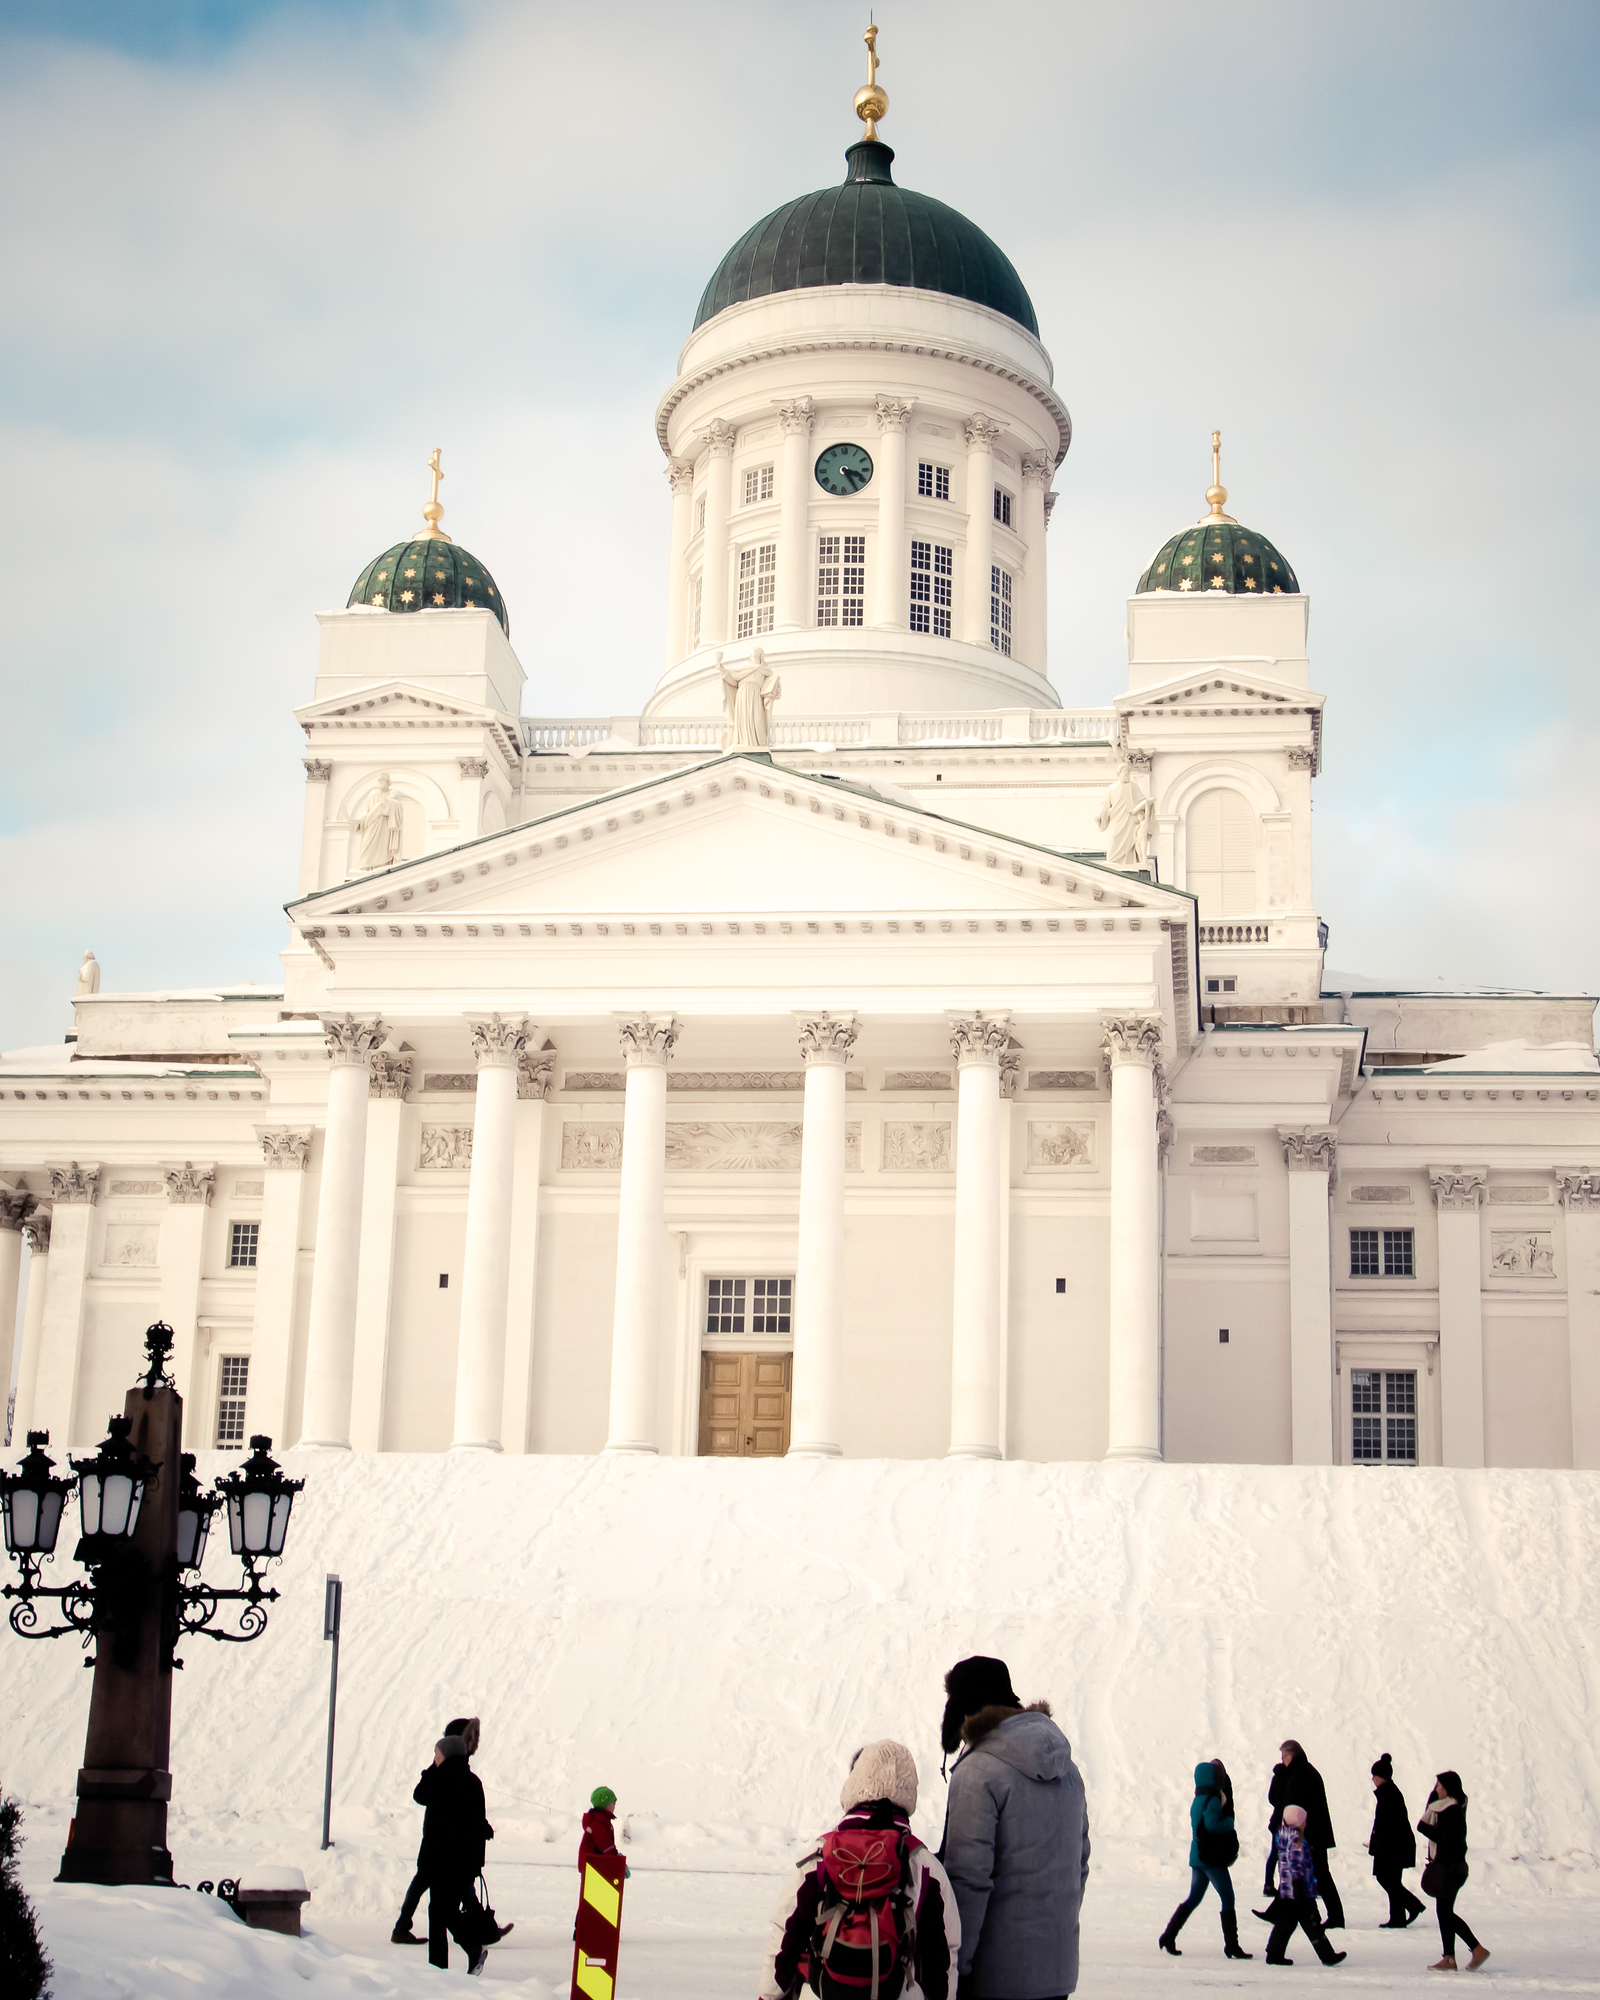 Looking at Architecture in Helsinki is just one of the nine best things to do in Helsinki. The other eight might surprise you.